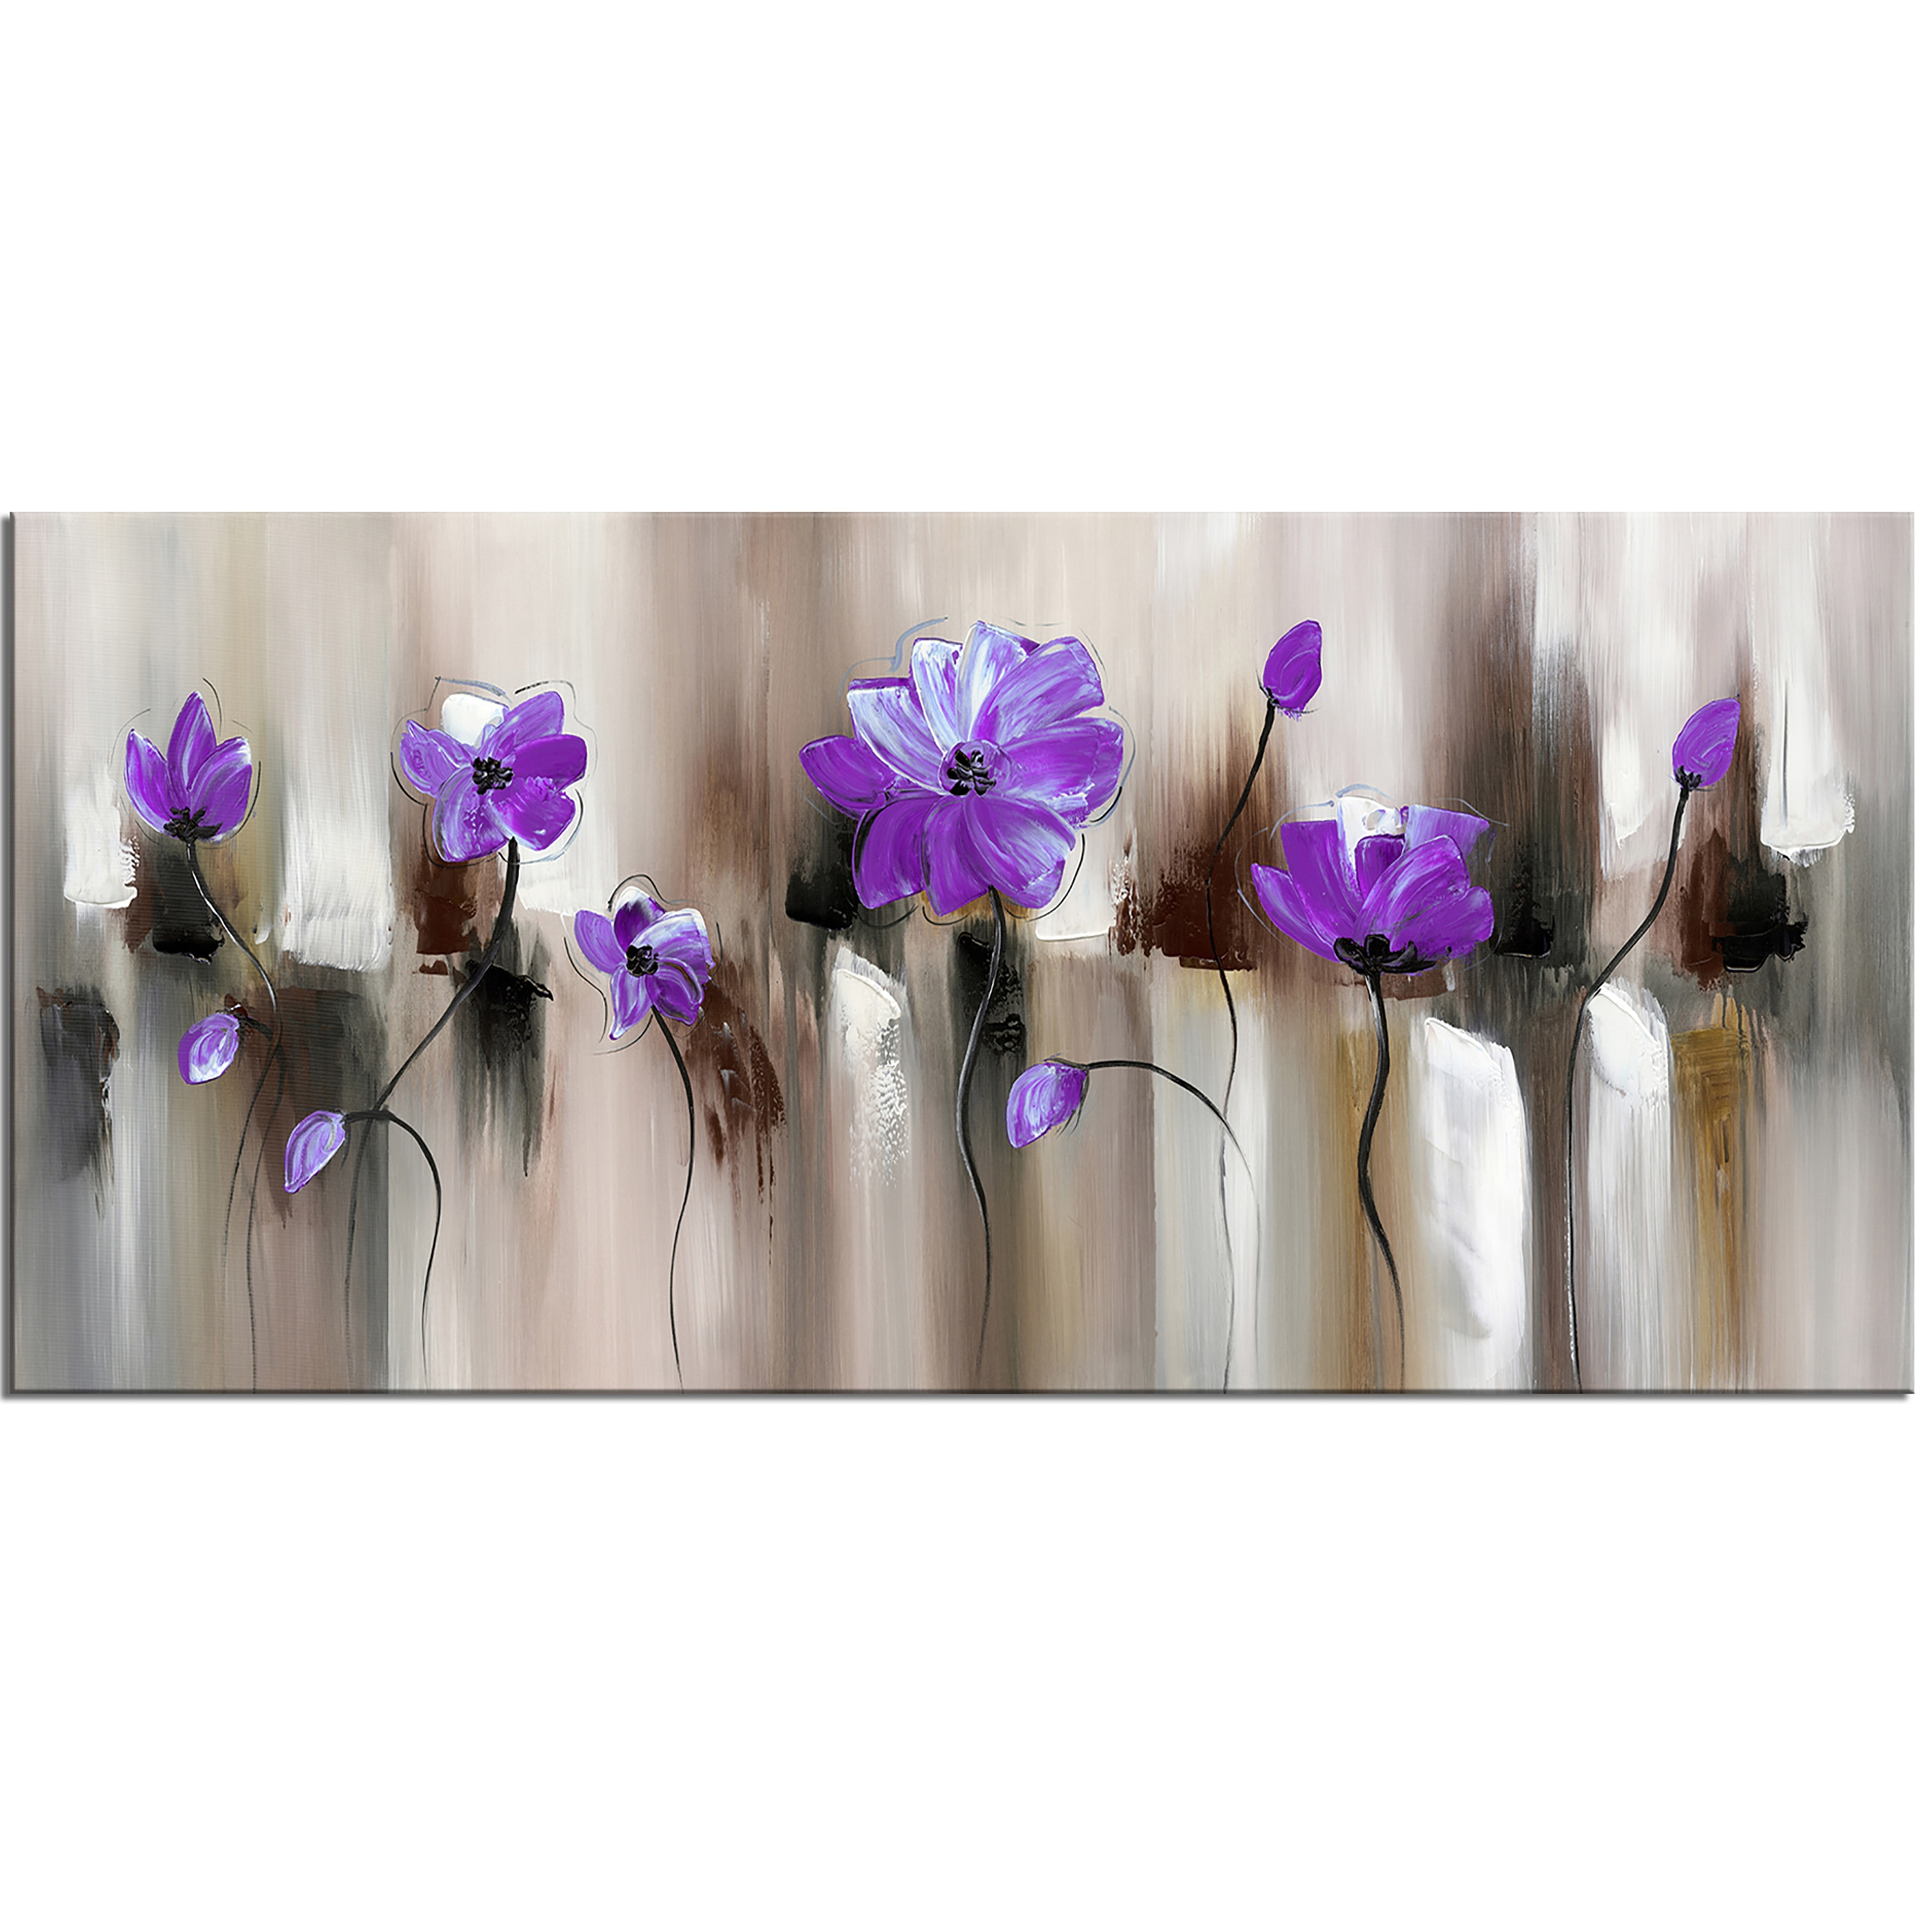 Design Art Blue Modern Flower Purple Canvas Print 32x16 Inches 32 In Wide X 16 High 1 Panel On Free Shipping Today